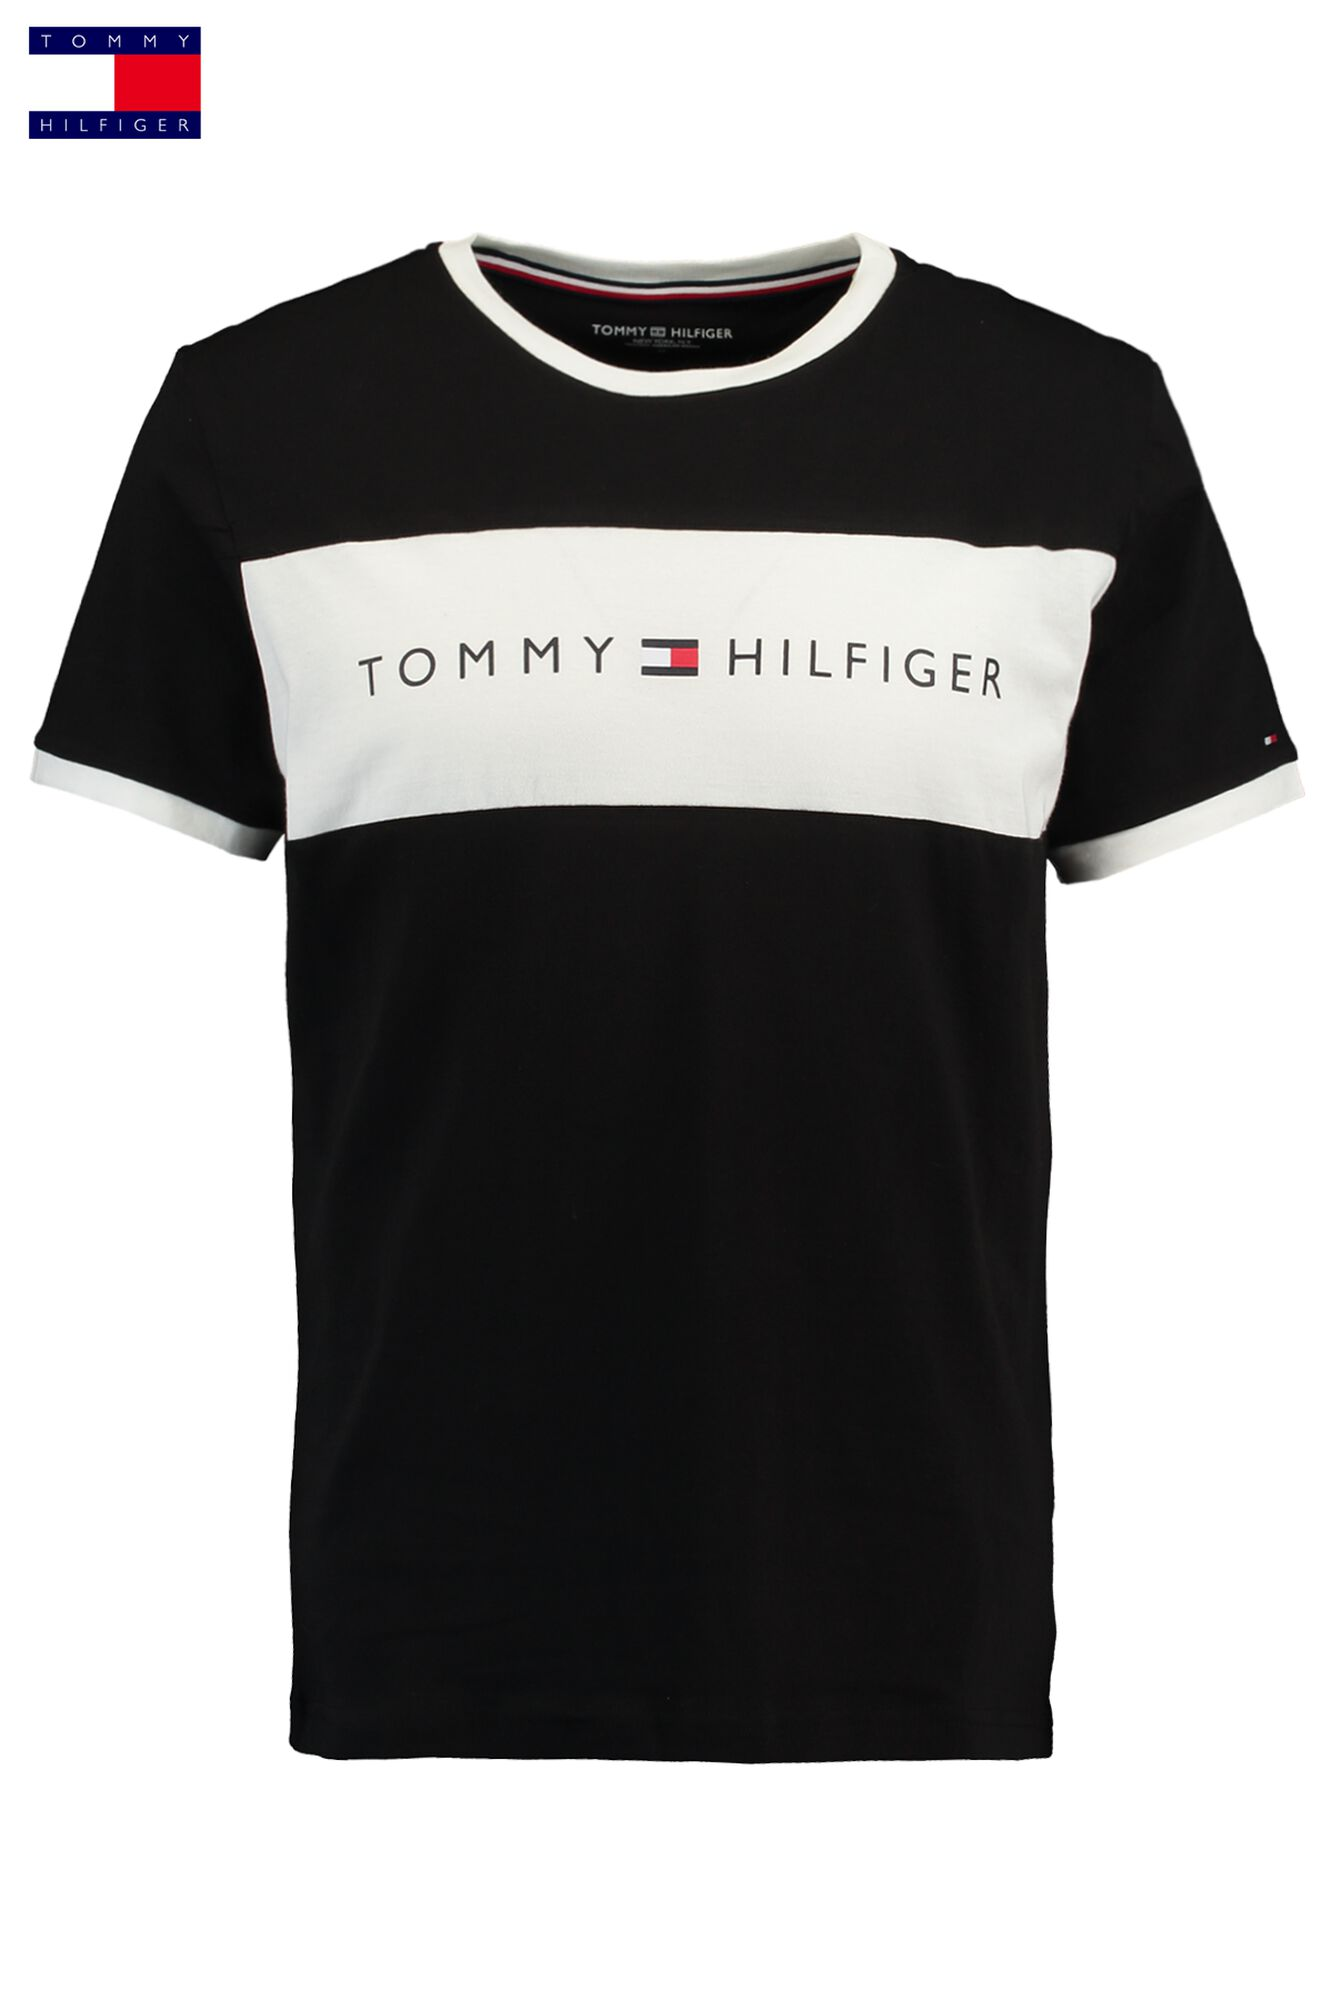 check out a2ef1 d3e7d Men T-shirt Tommy Hilfiger Logo Flag Black Buy Online